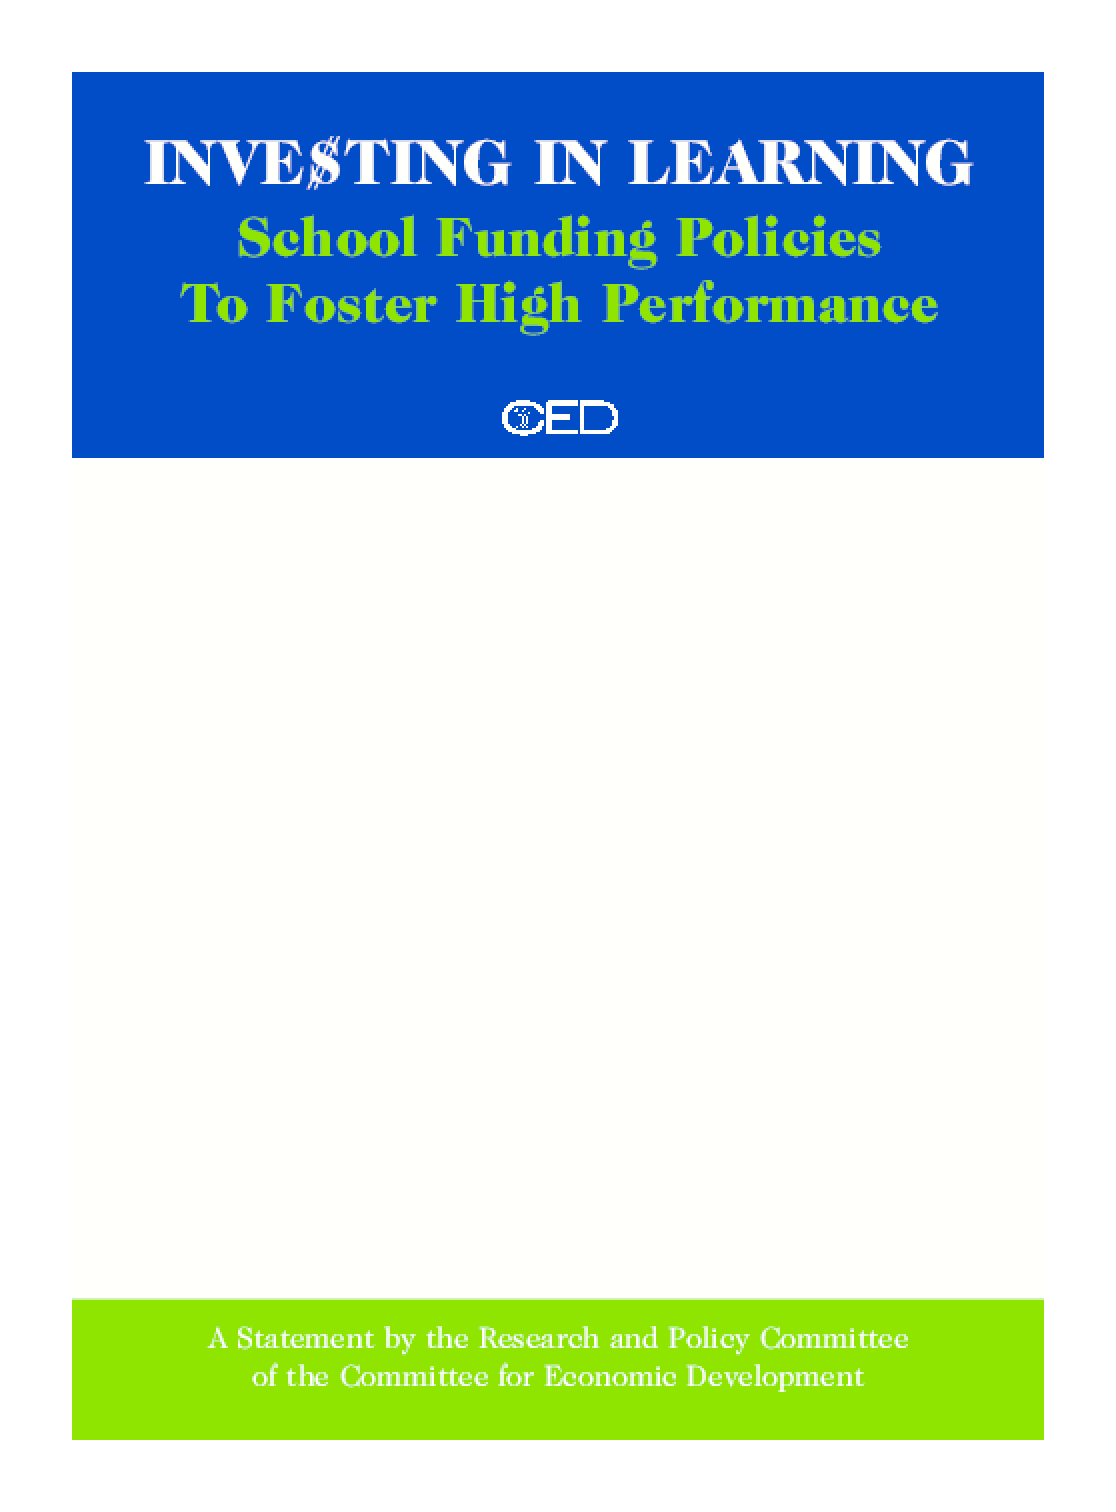 Investing in Learning: School Funding Policies to Foster High Performance